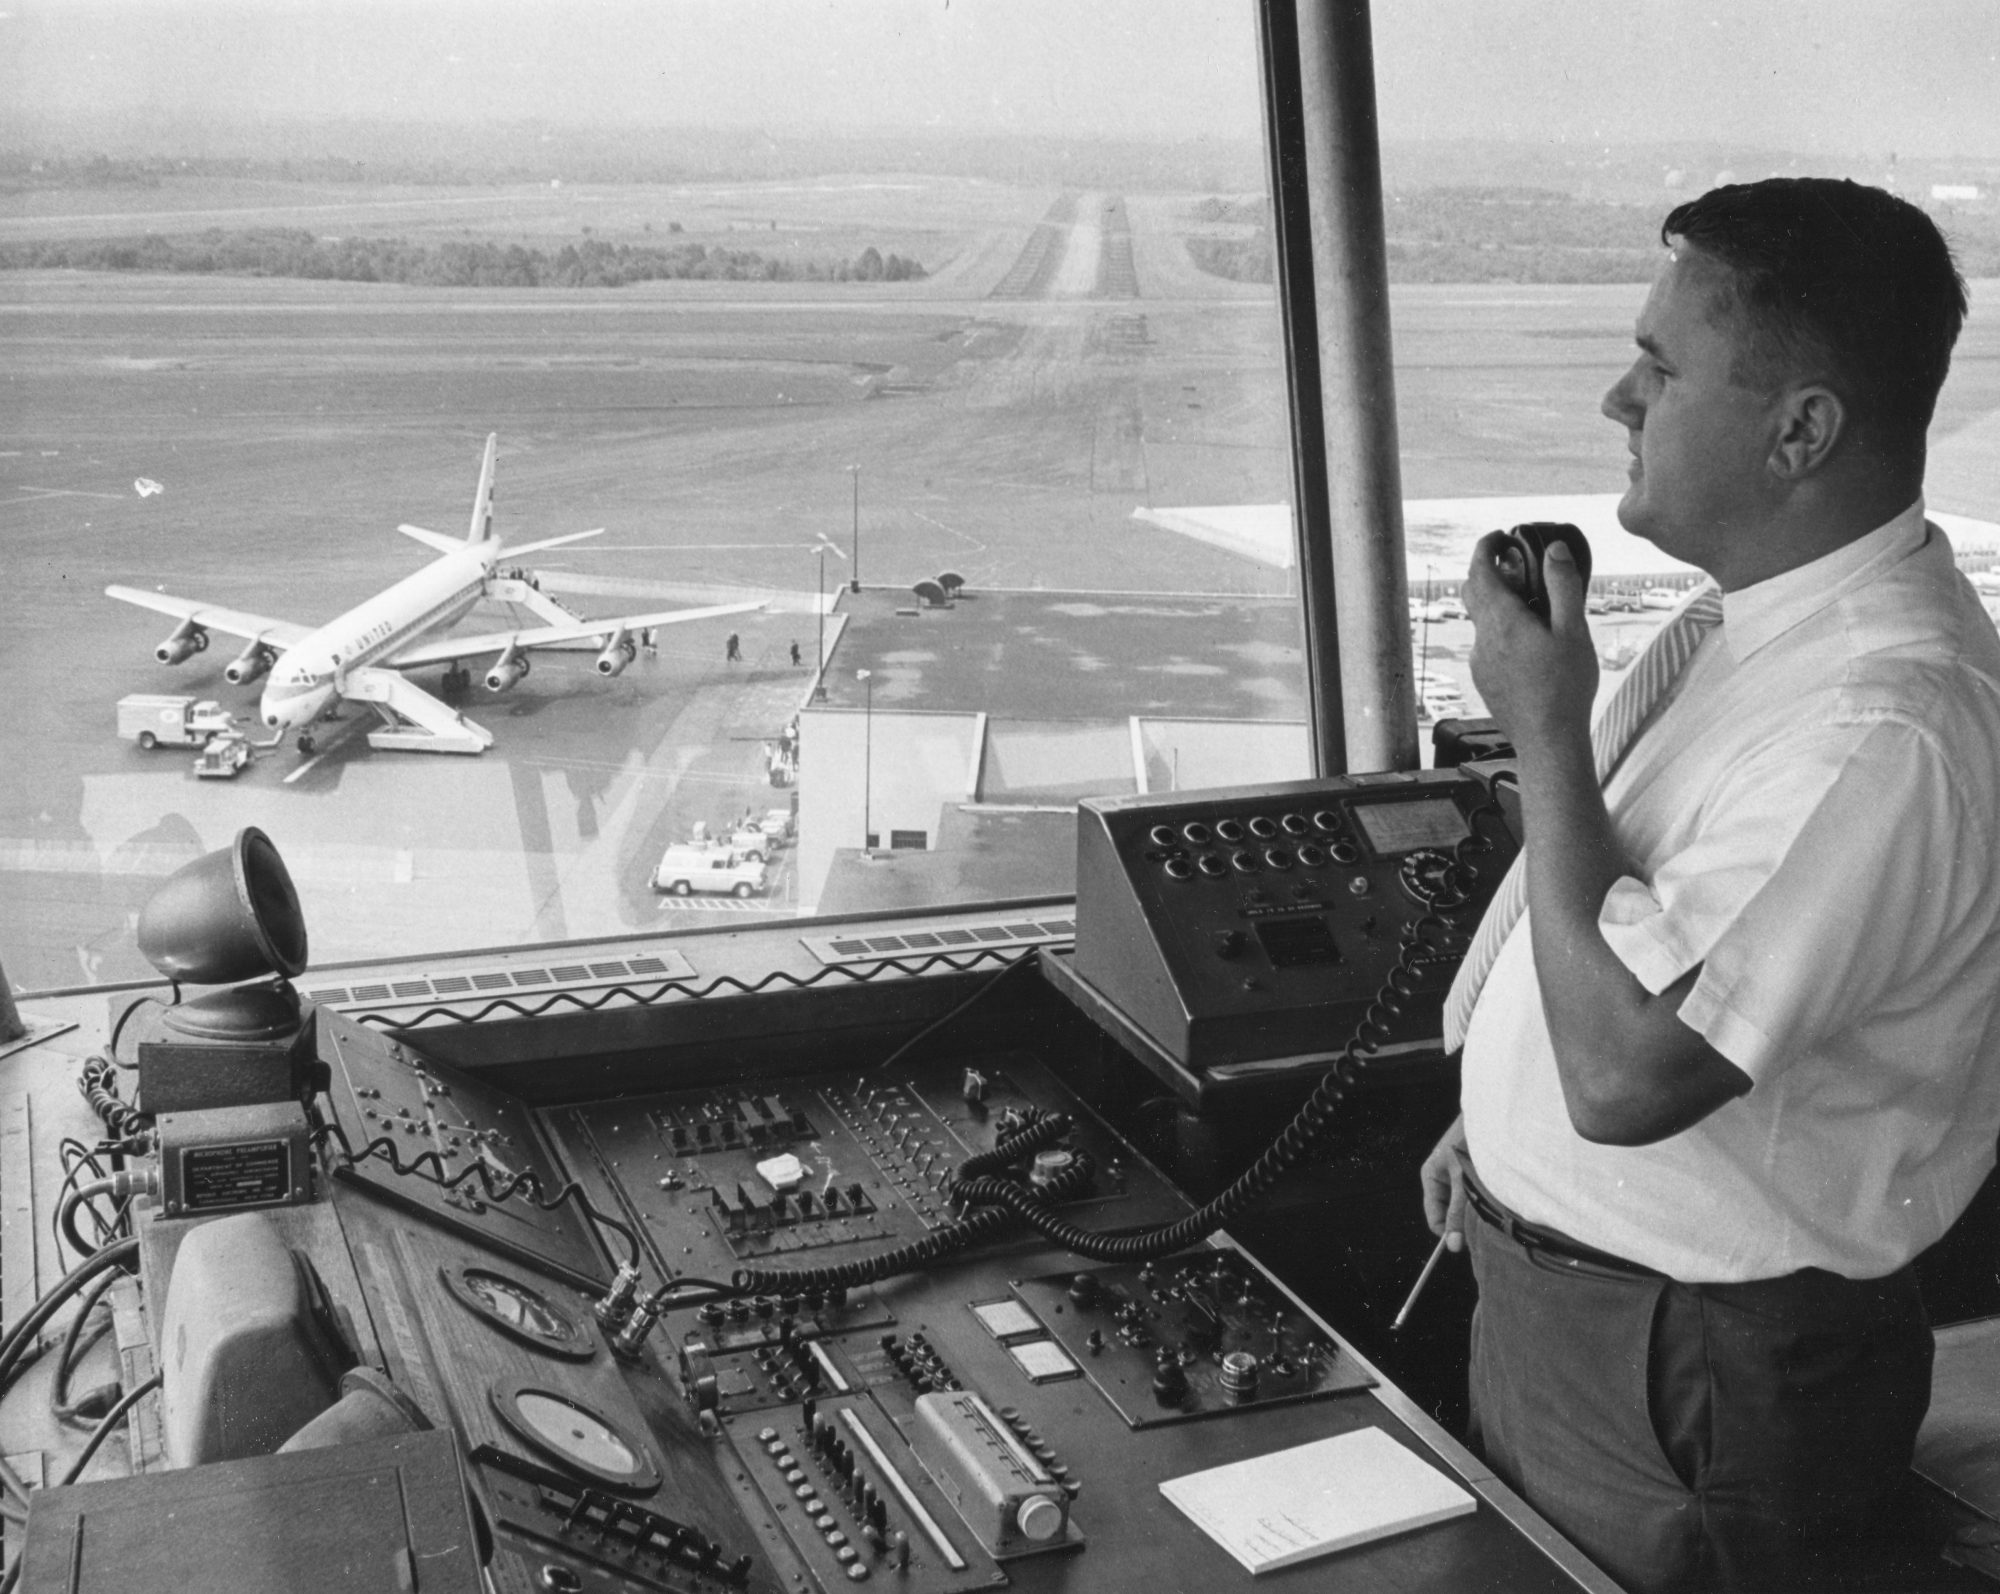 faa air traffic controller black and white photo